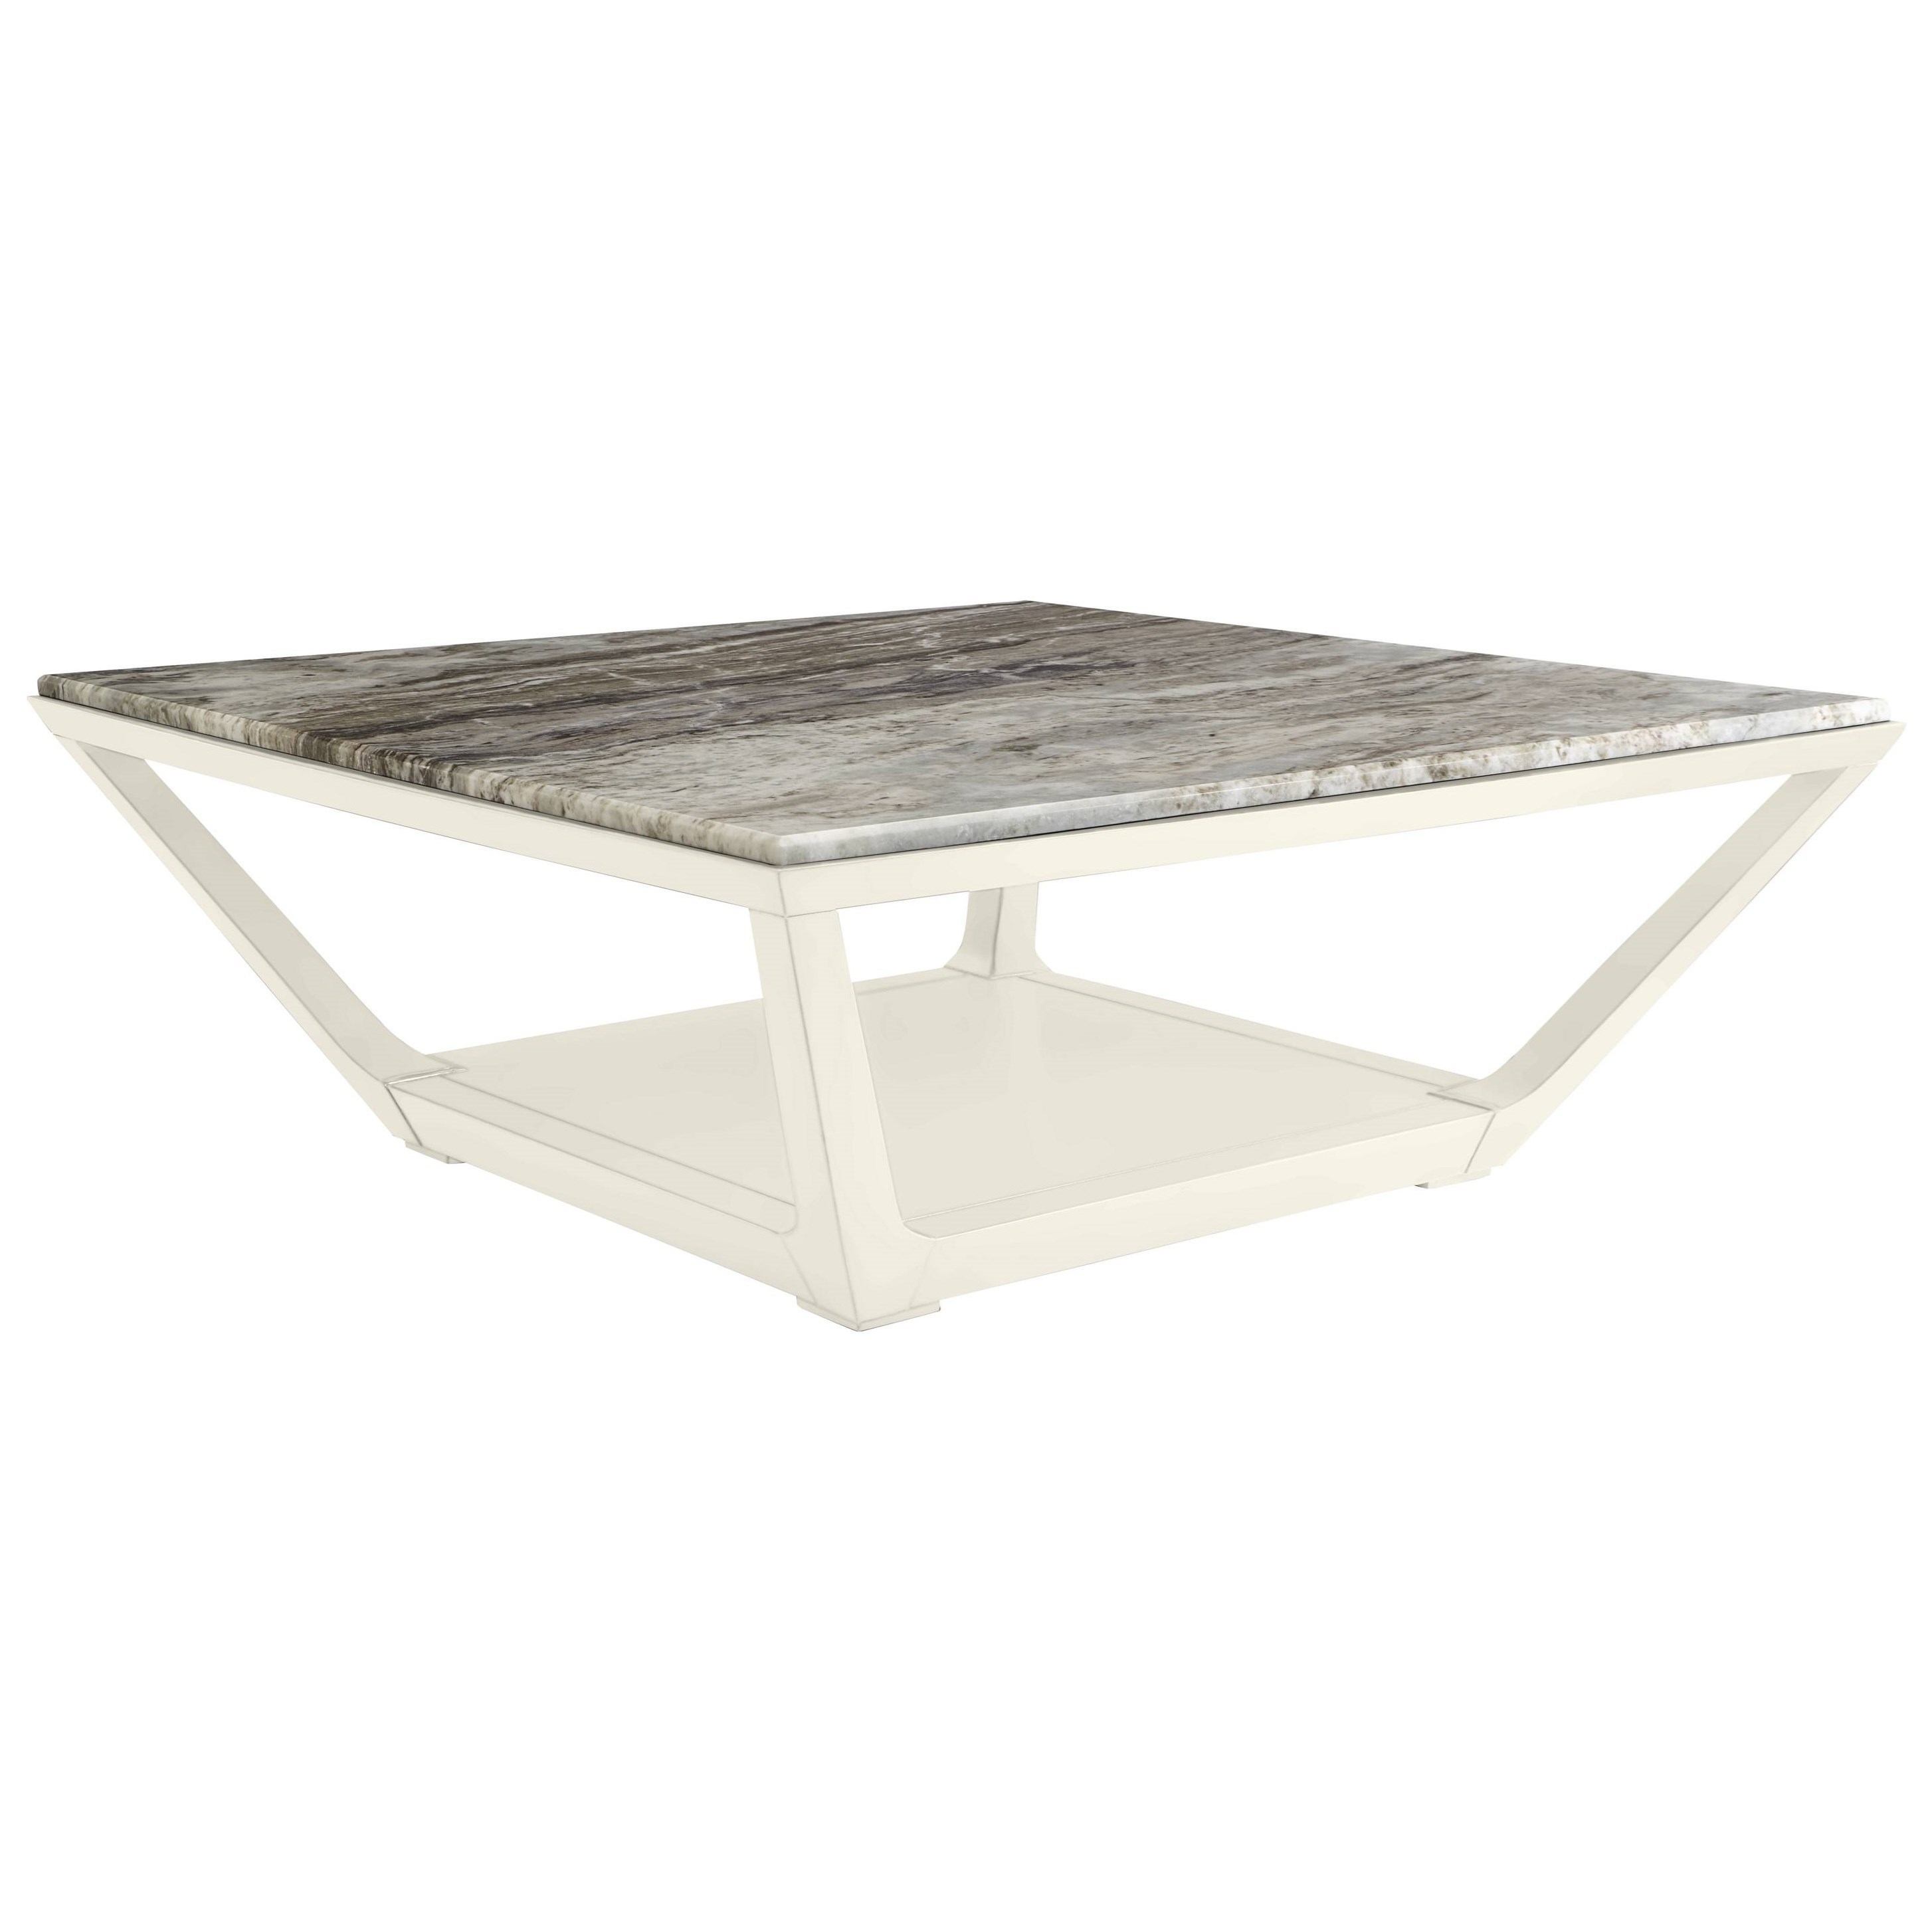 Stanley Furniture Coastal Living Oasis Poseidon Cocktail Table w/ Granite Top - Item Number: 527-25-02+75-102